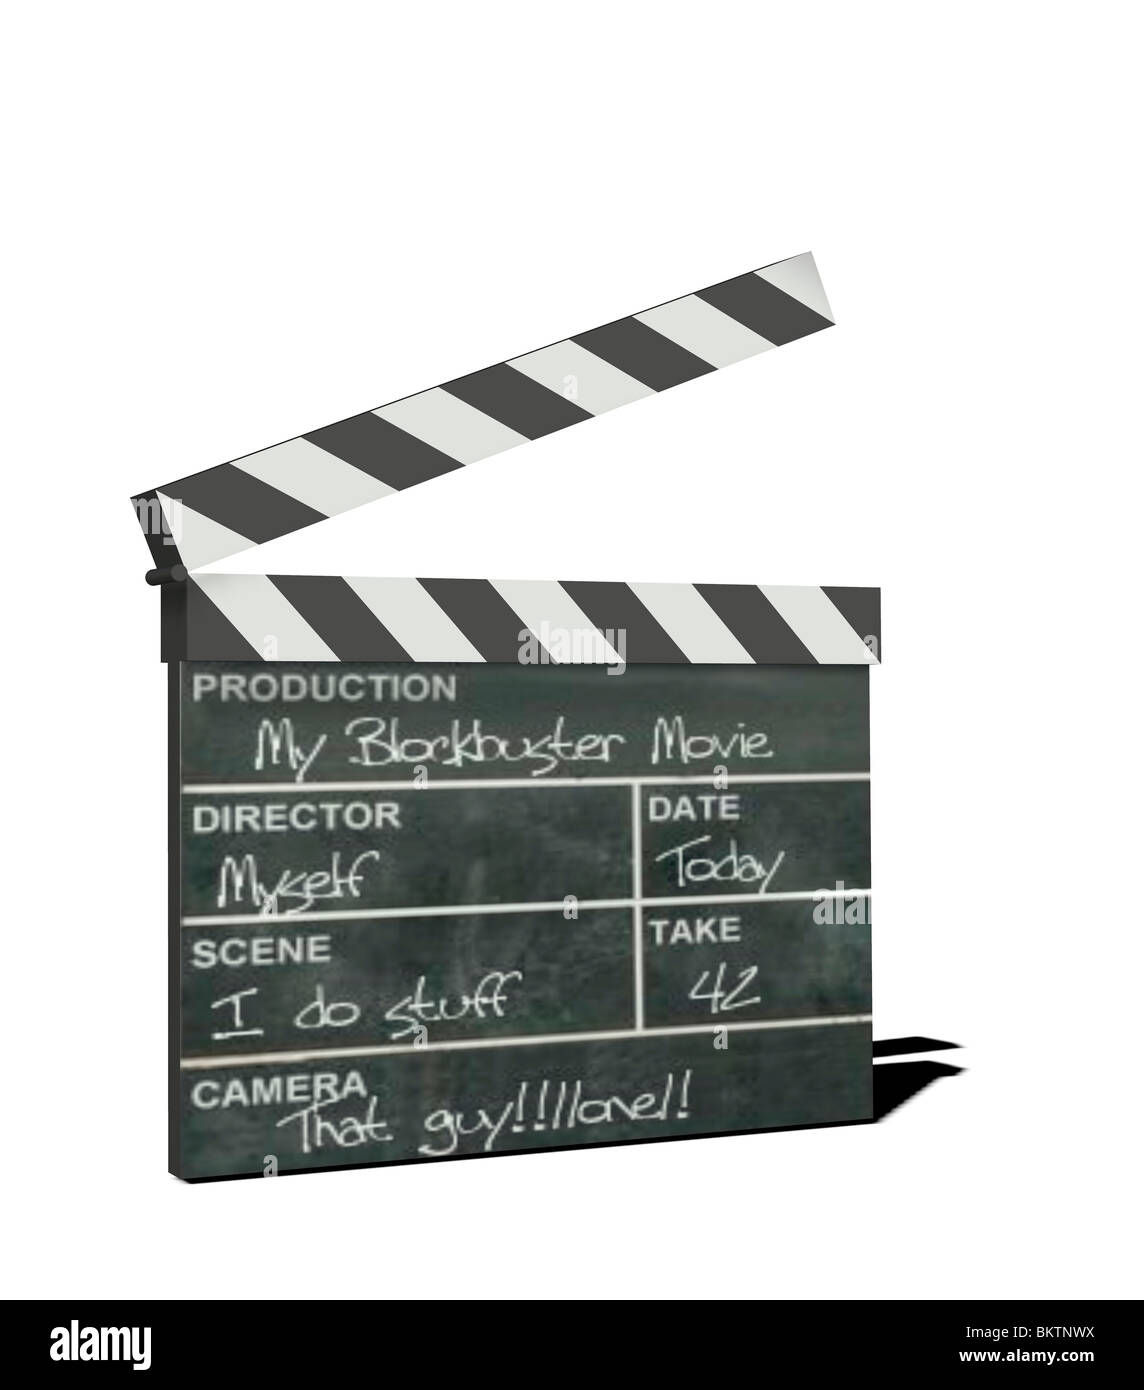 clapperboard - Stock Image